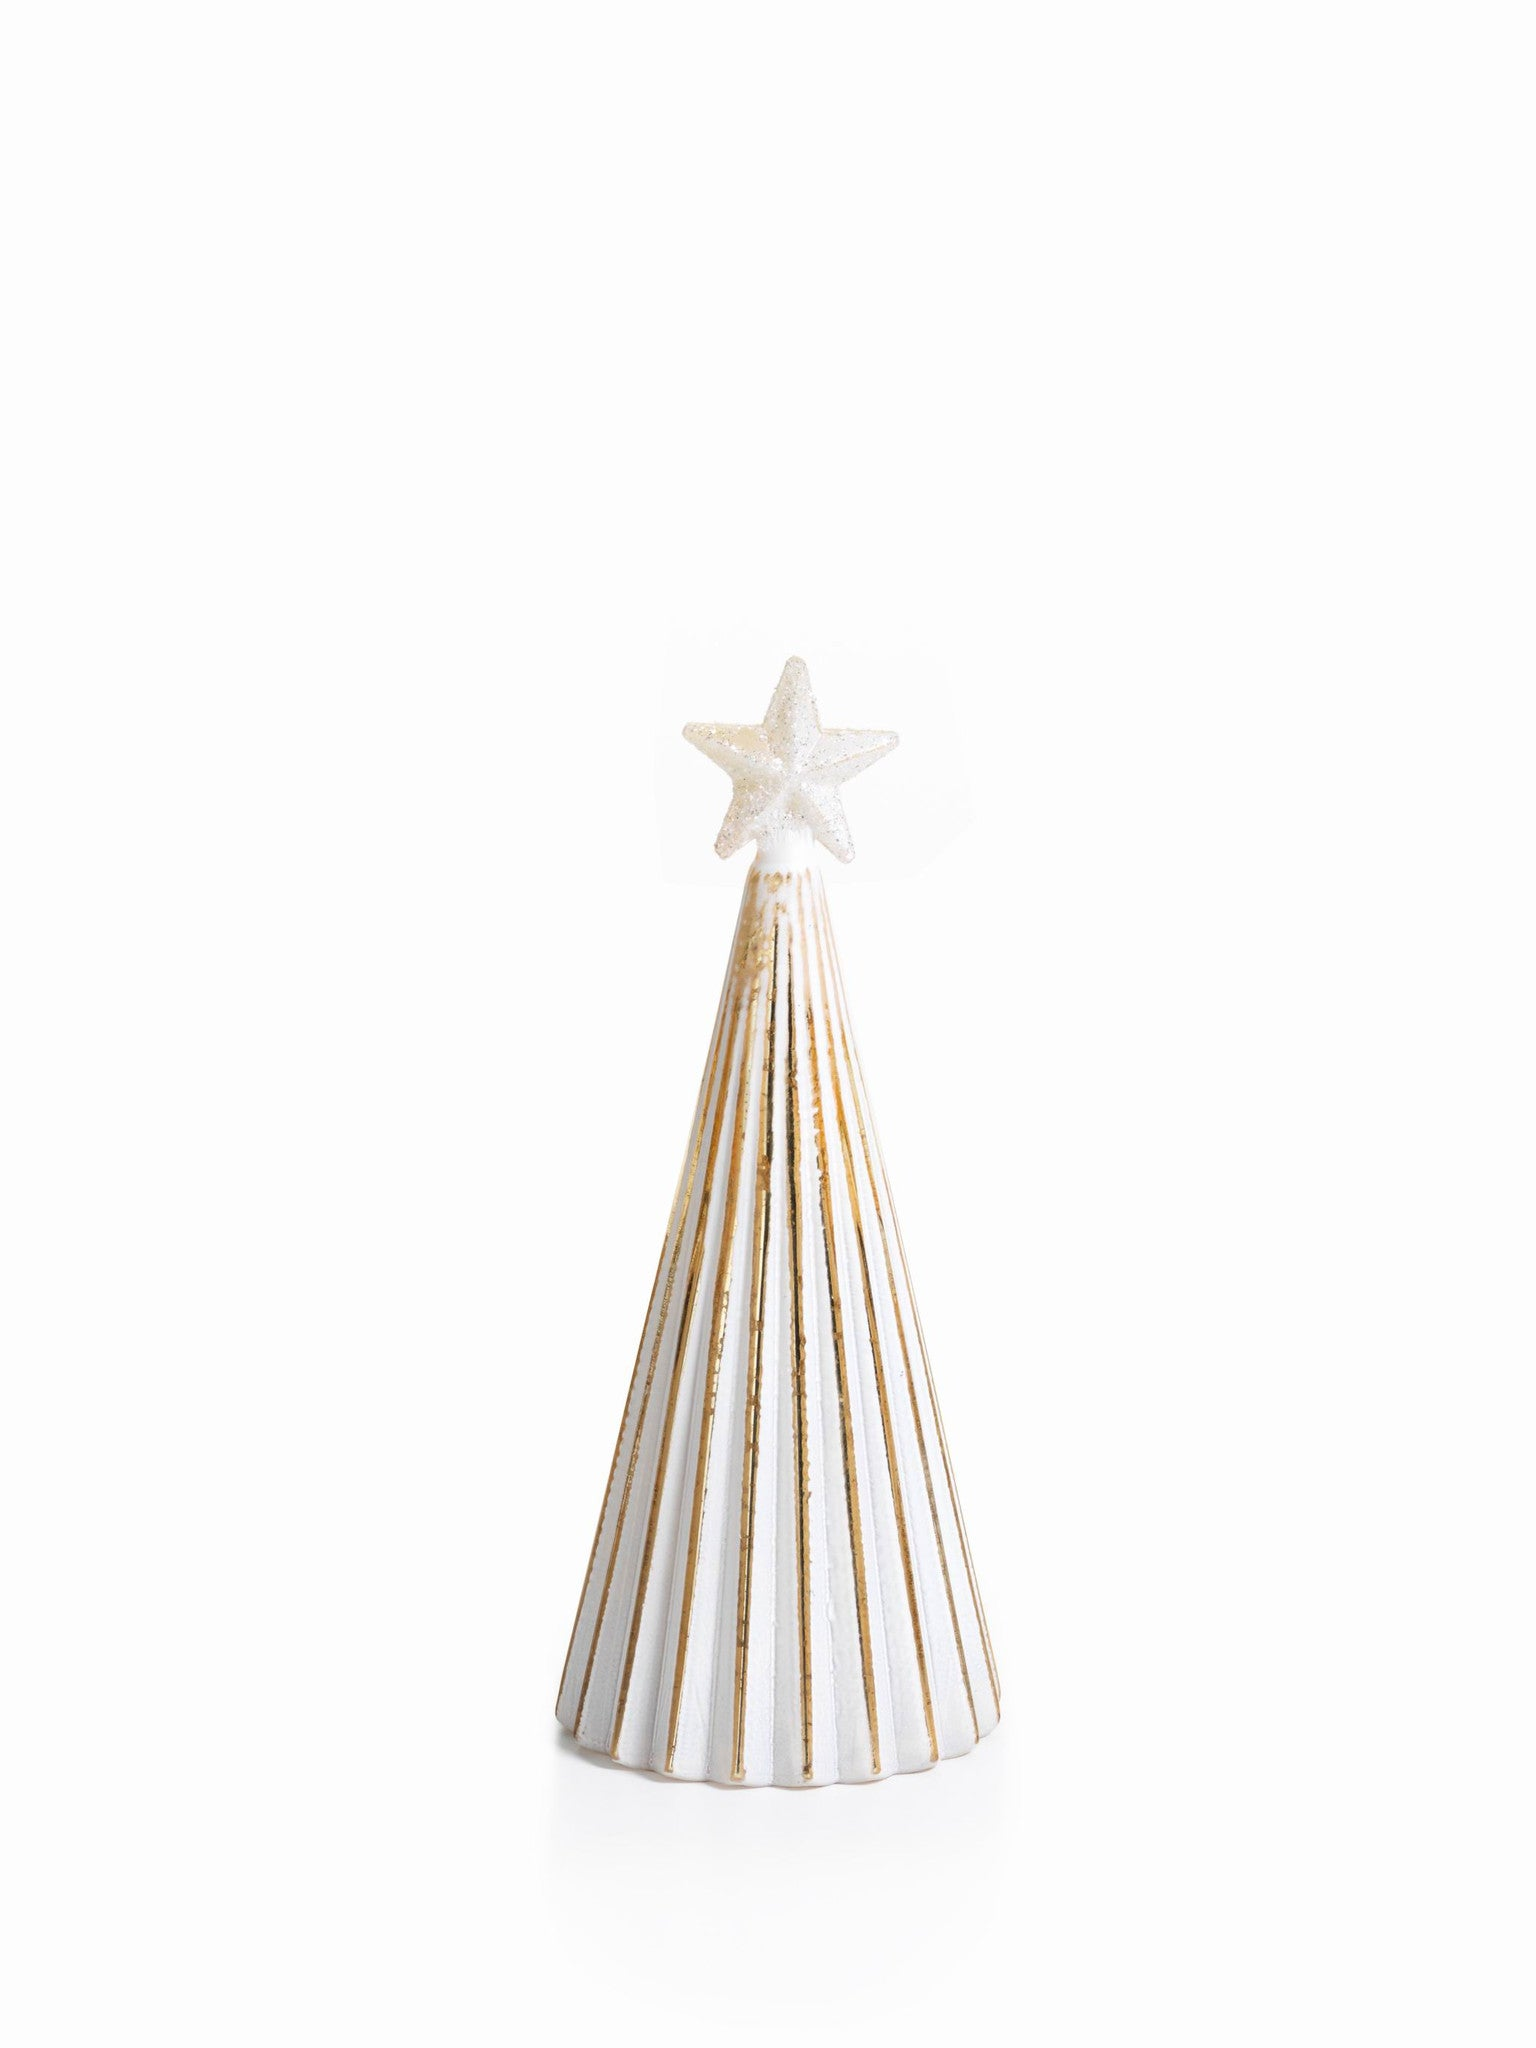 LED Glass Decorative Tree - Gold - Set of 6 - Medium / Straight Line - CARLYLE AVENUE - 12